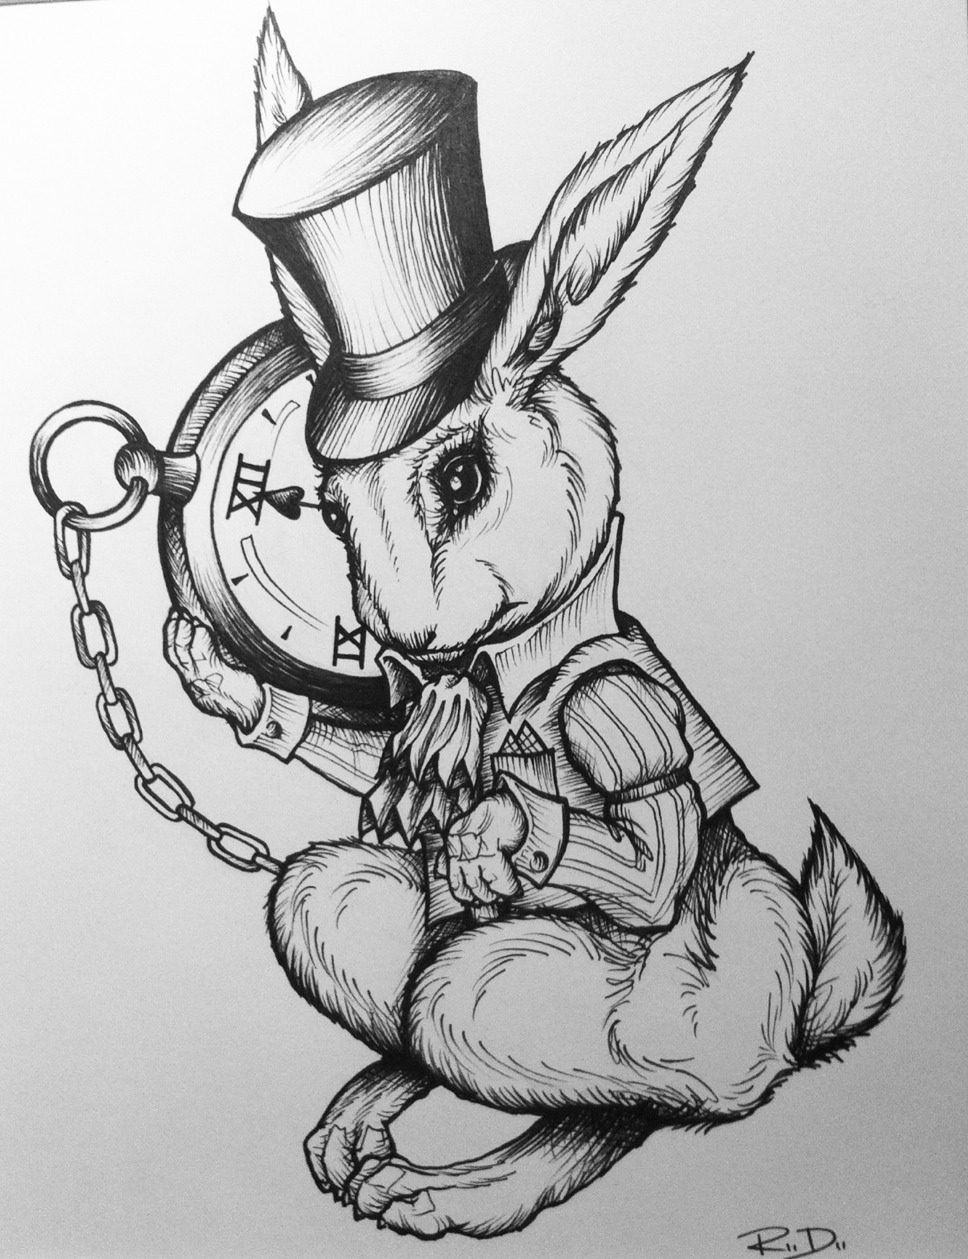 Drawn rabbid alice in wonderland  White Rabbit Alice illustration